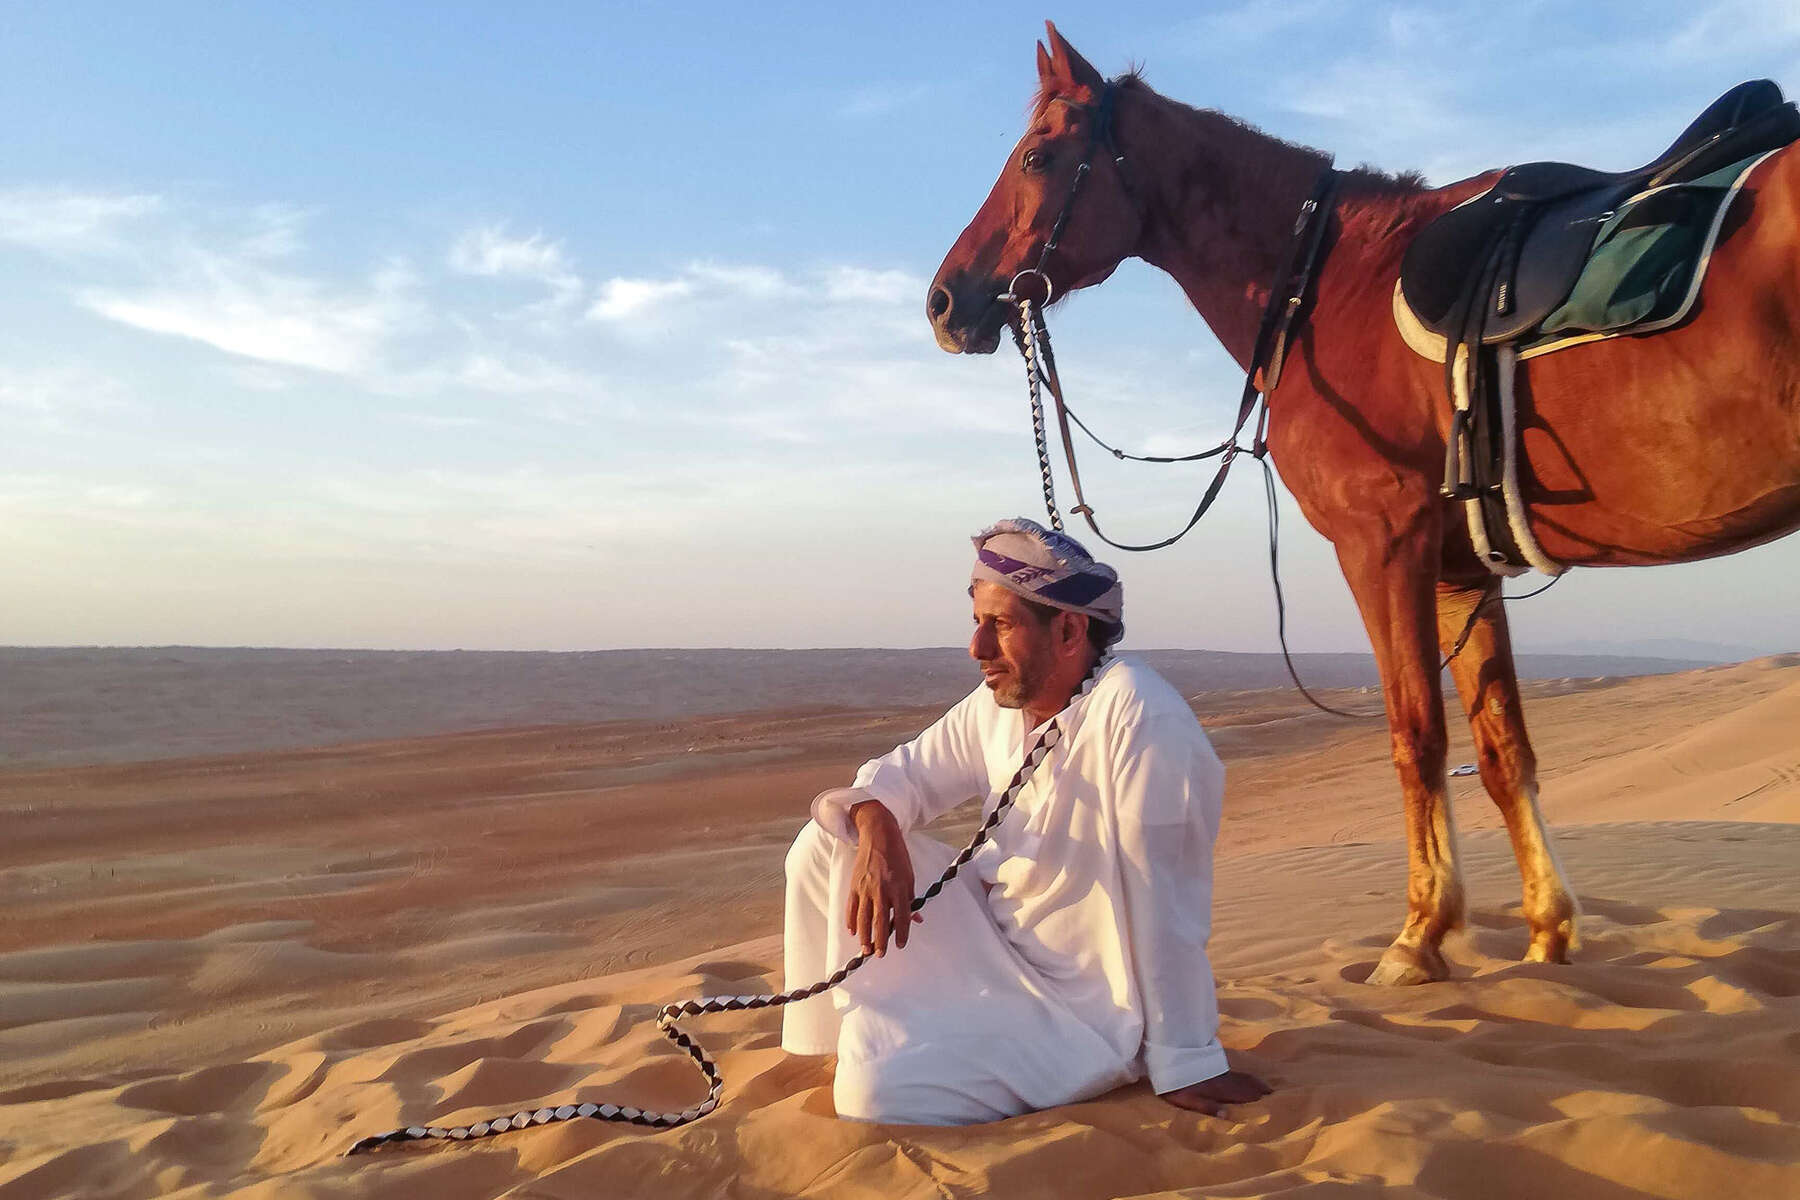 Bedouin and horse in Oman